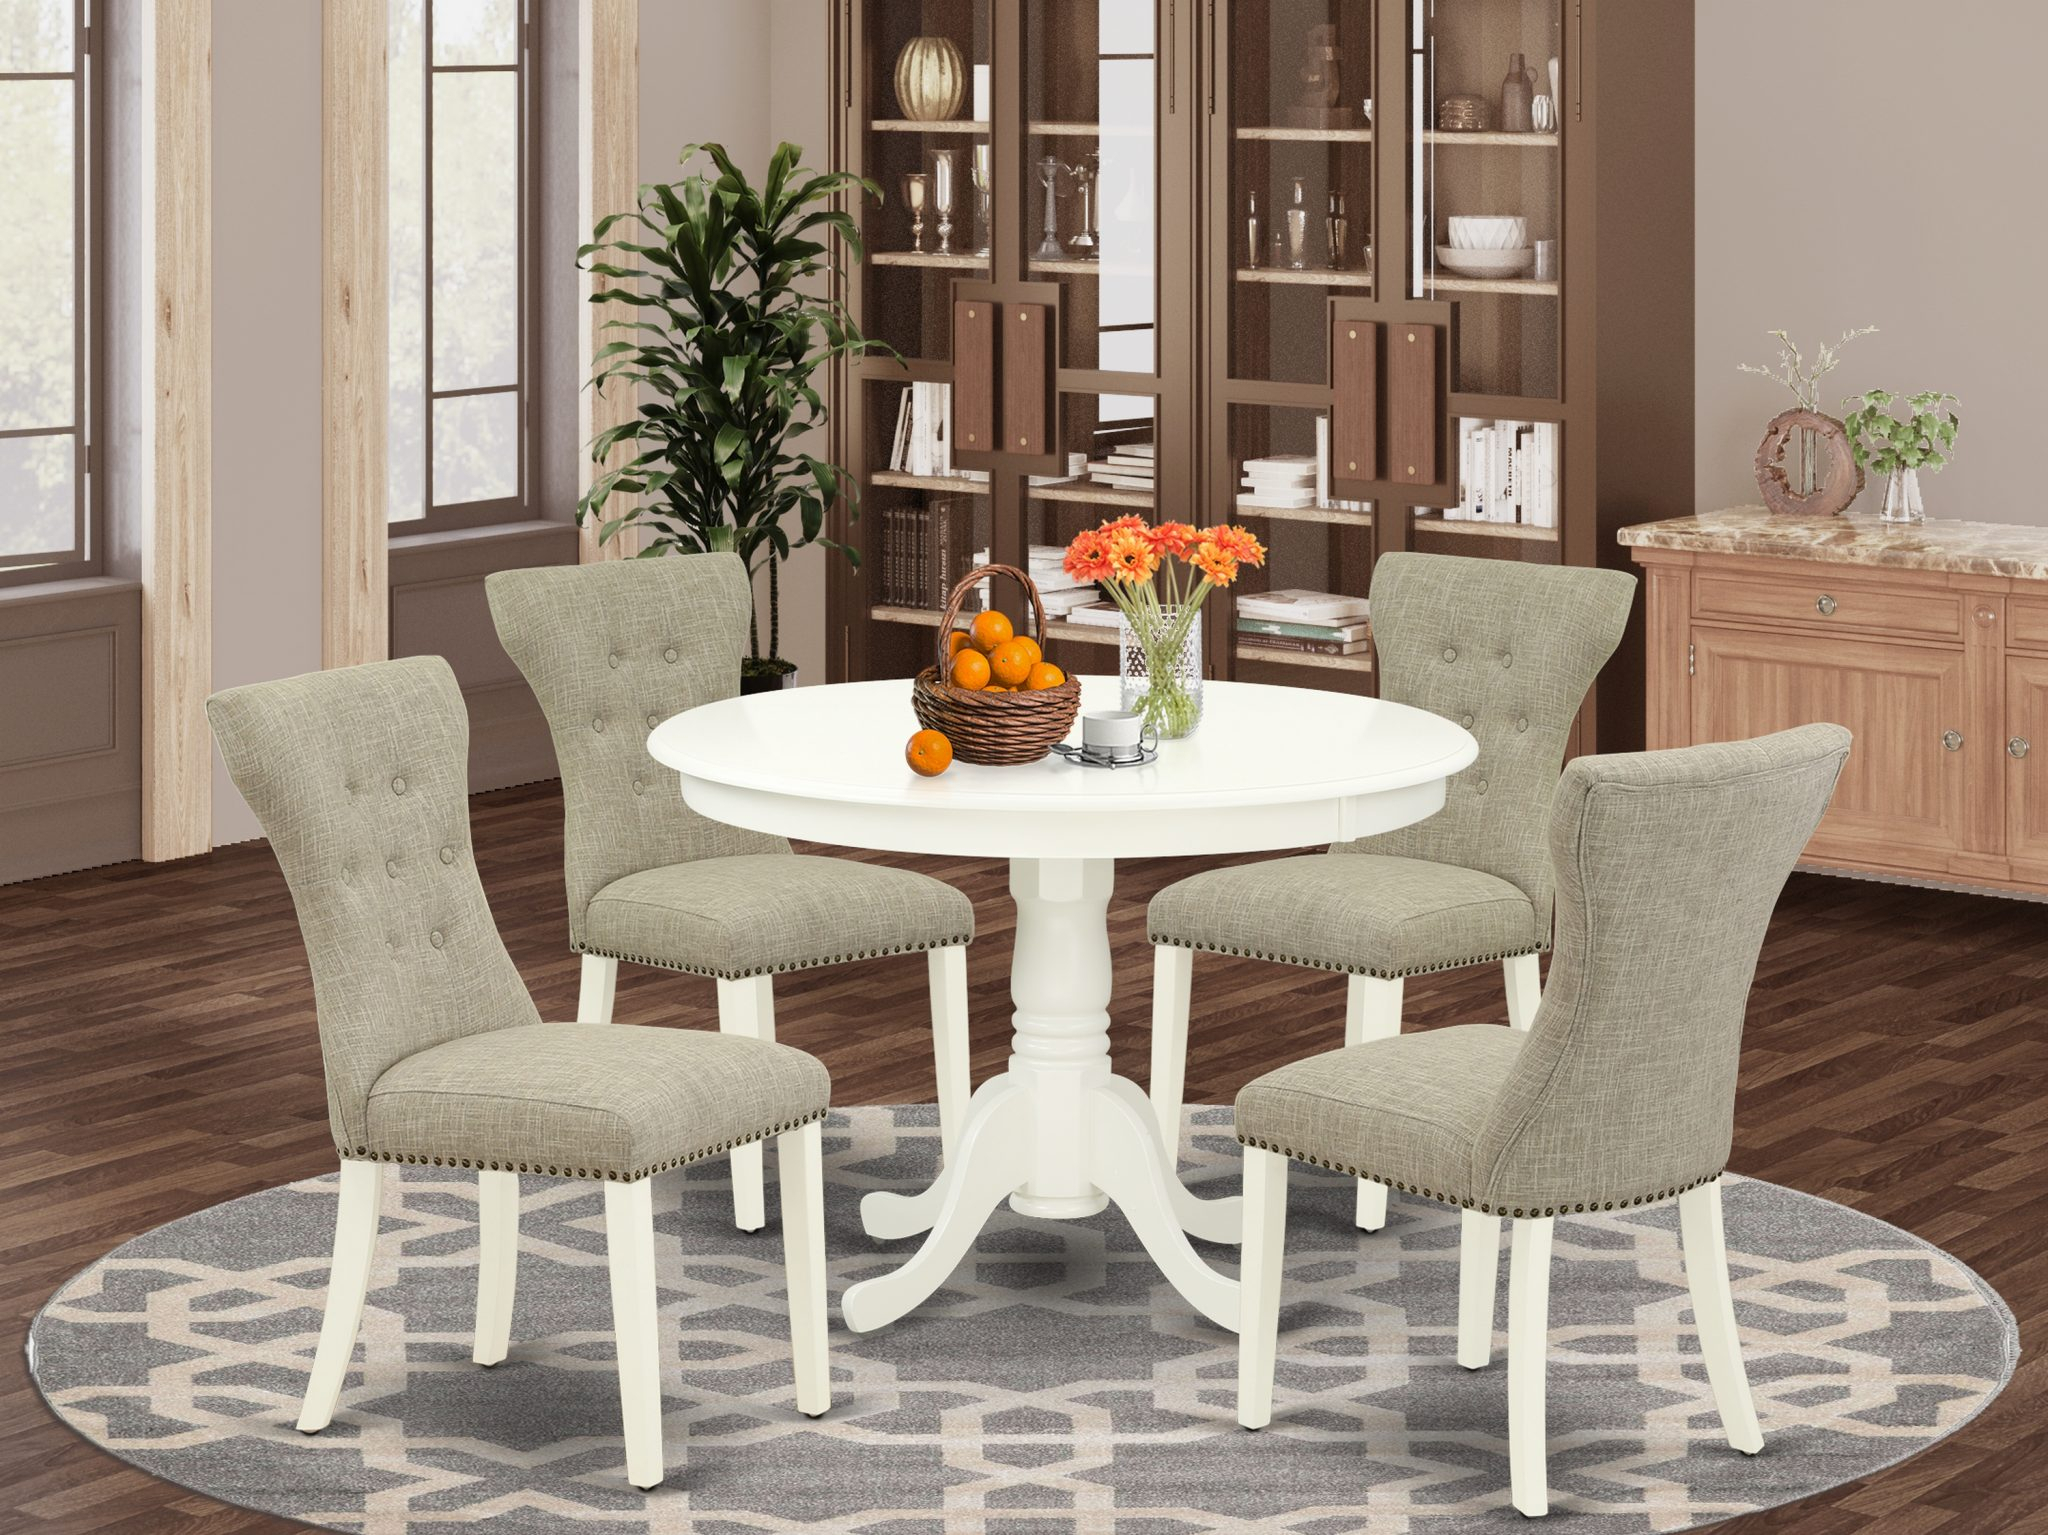 East West Furniture Hlga5 Lwh 35 5 Piece Small Dining Inside Most Up To Date Montauk (View 11 of 15)